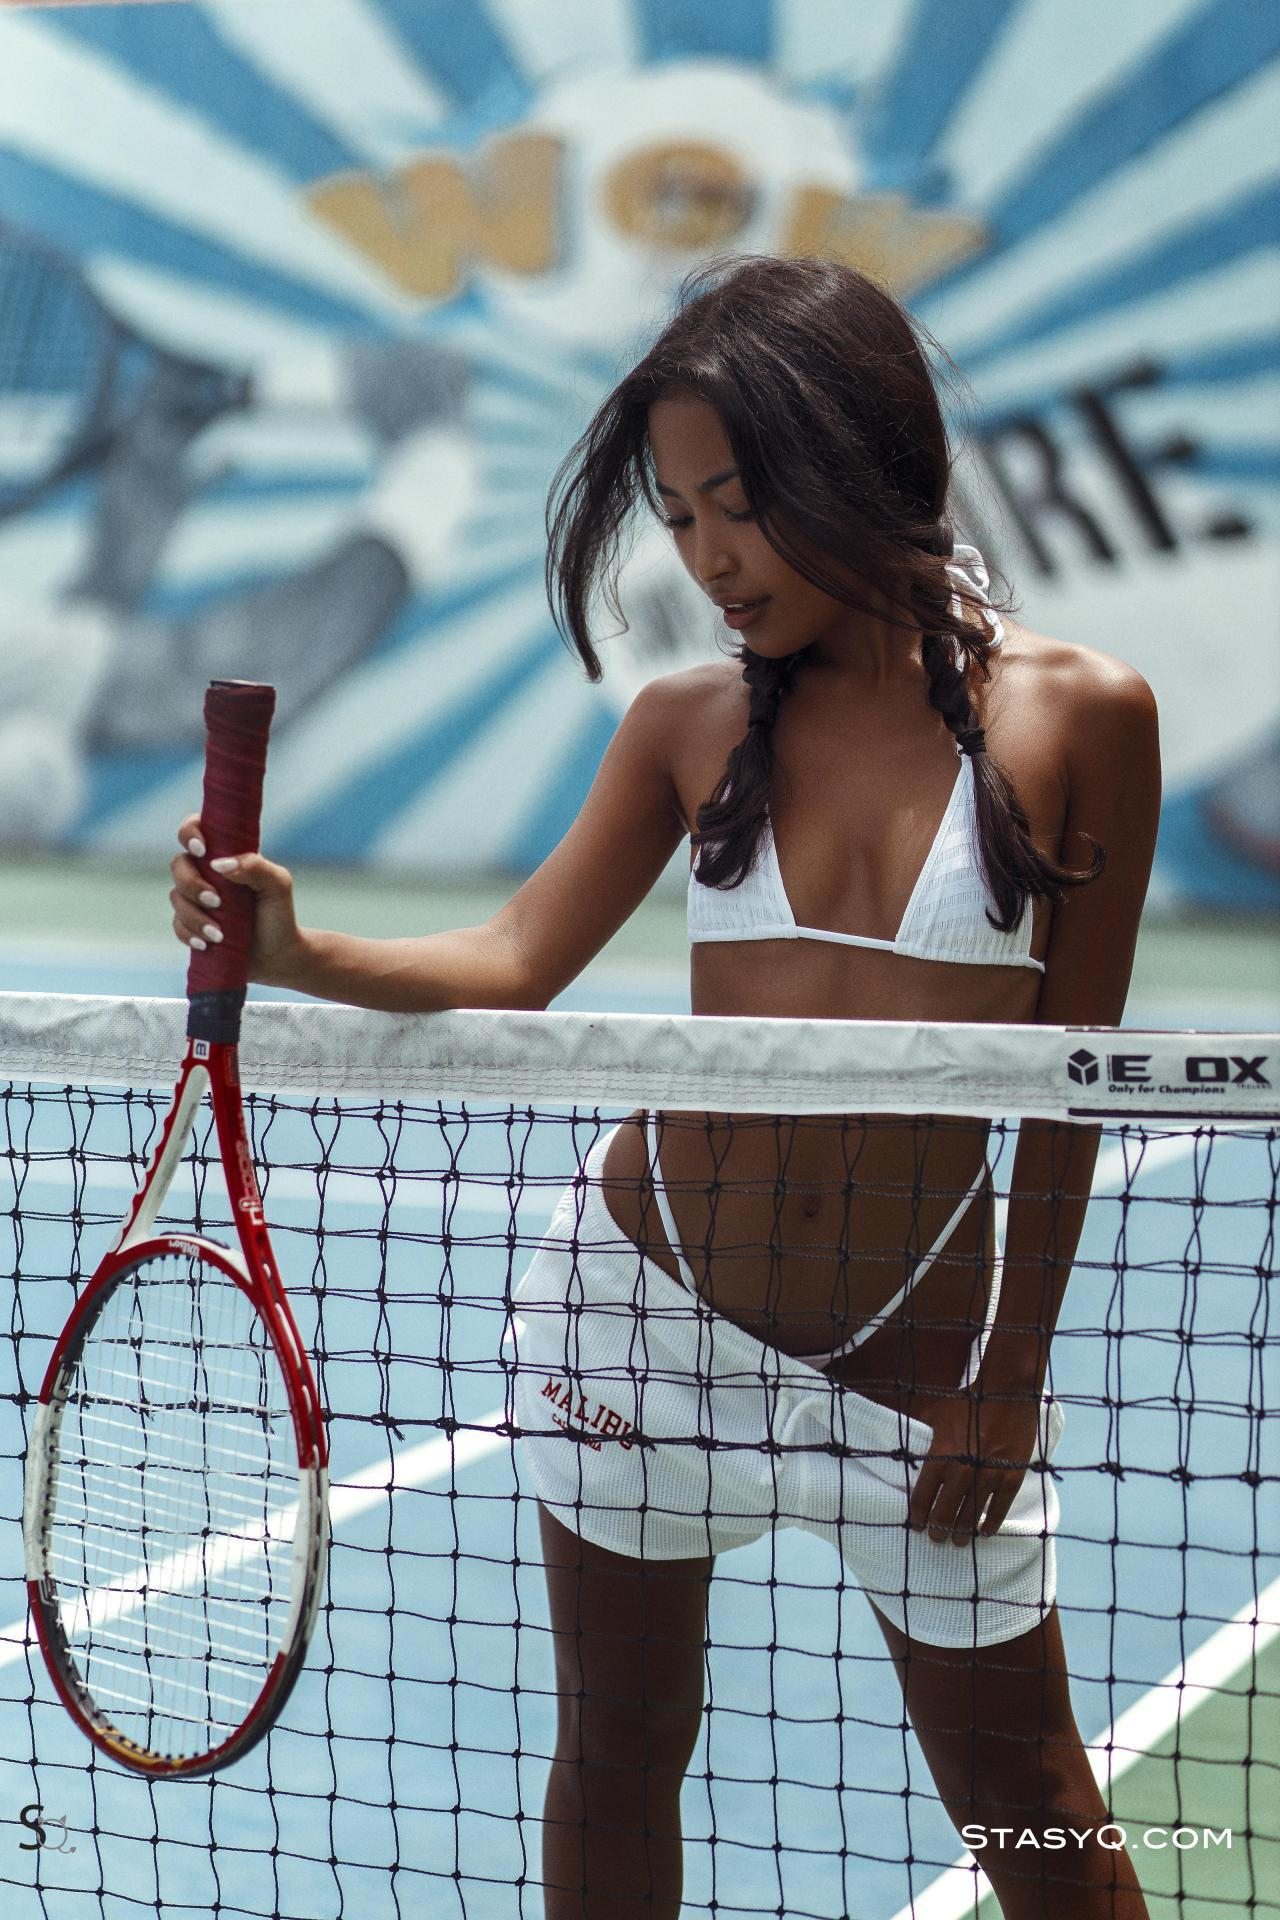 Tennis fan SalsaQ shows off her body for StasyQ | Daily Girls @ Female Update